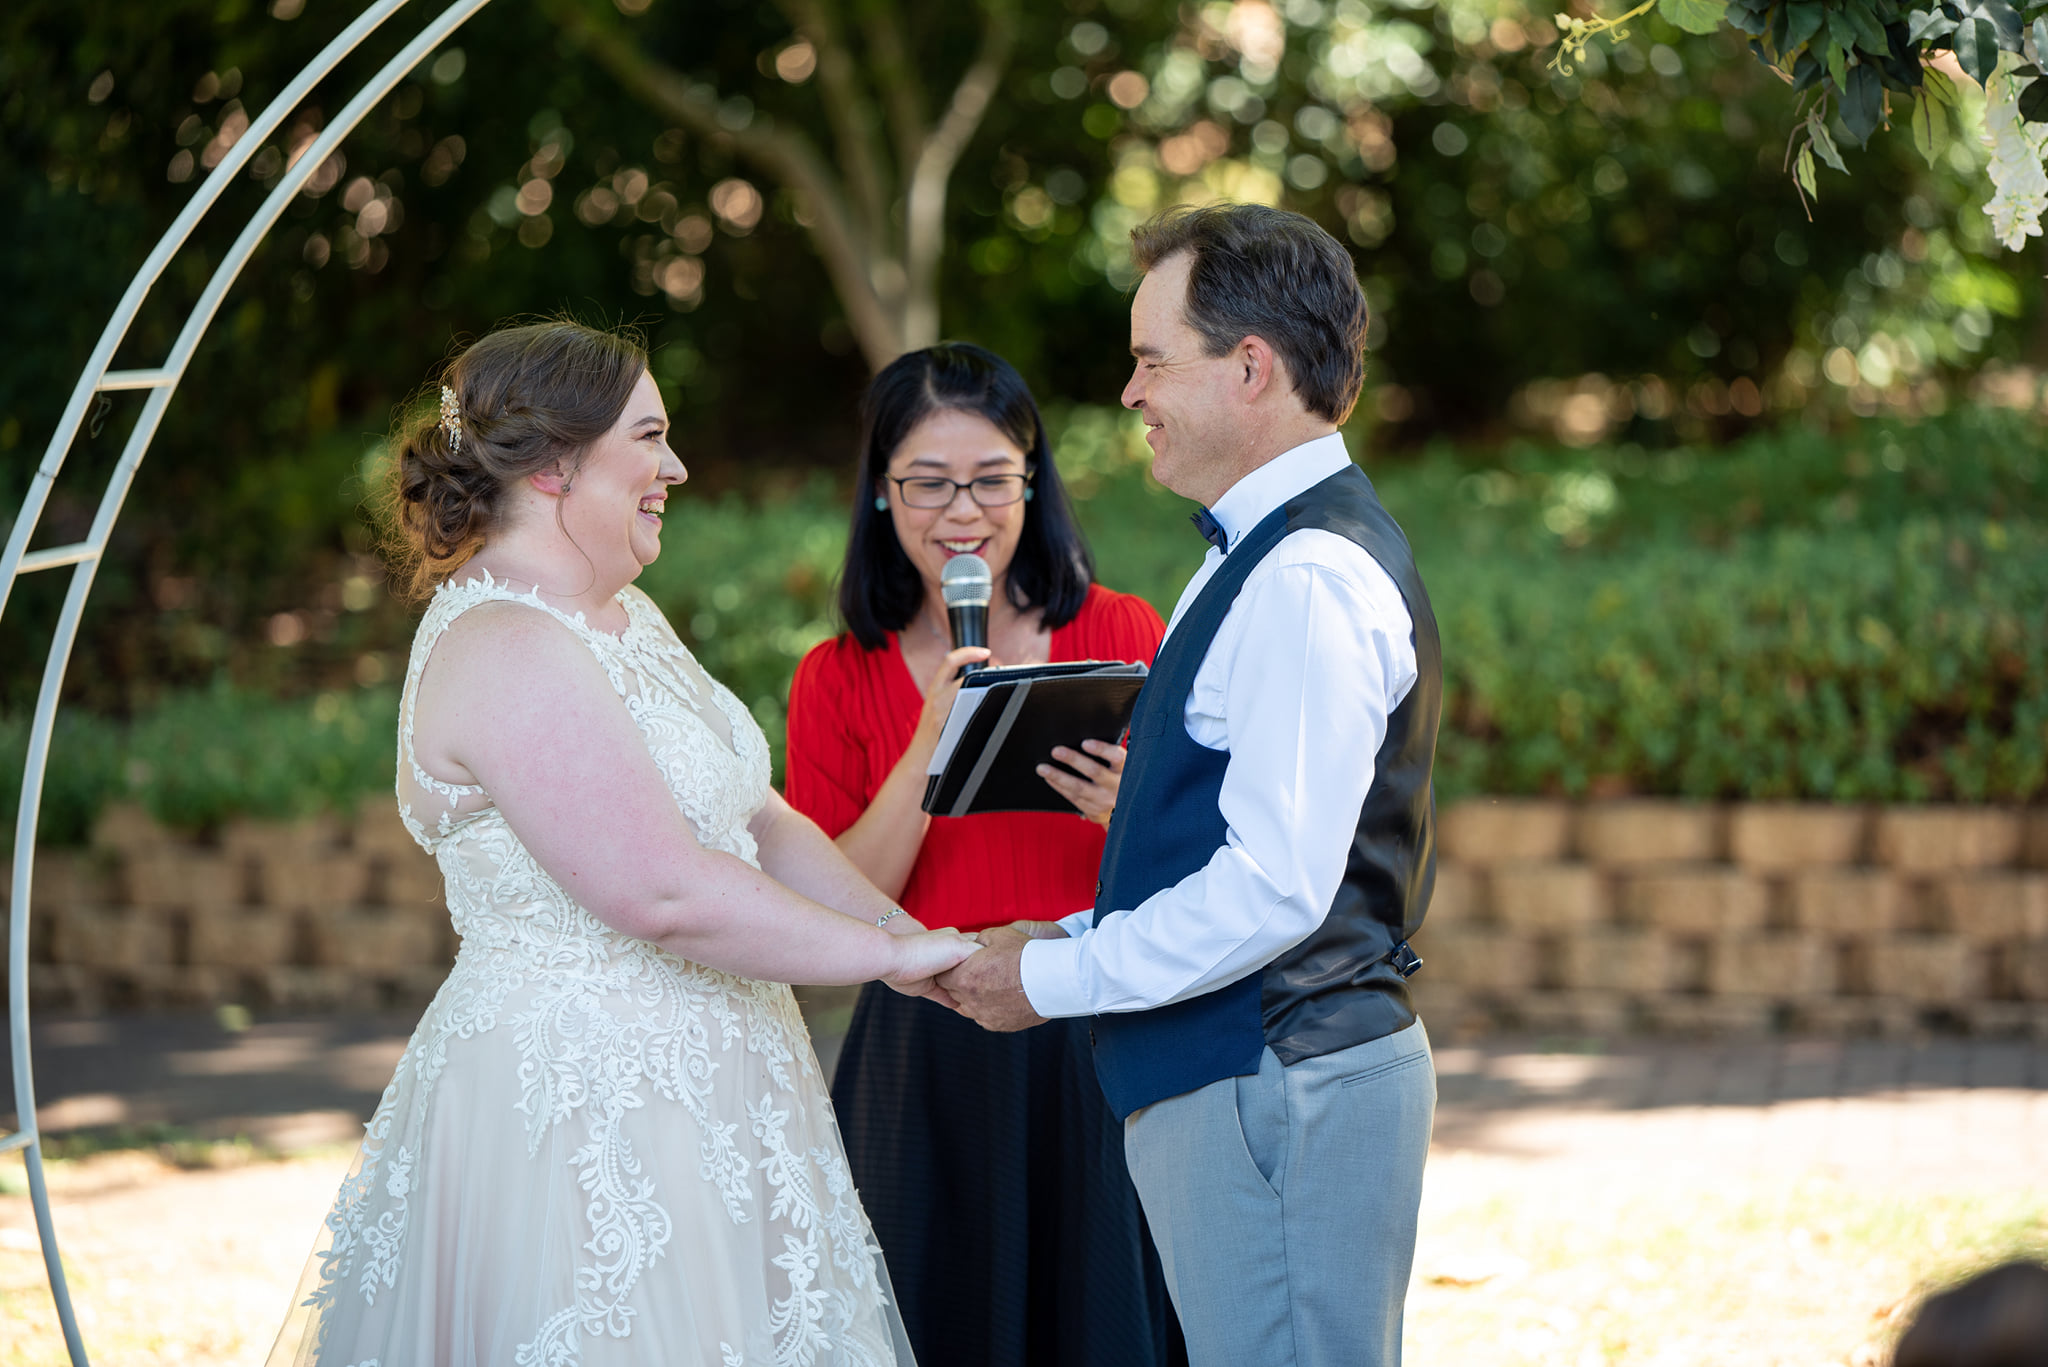 Nikki and Shane - Stockade Botanical Park